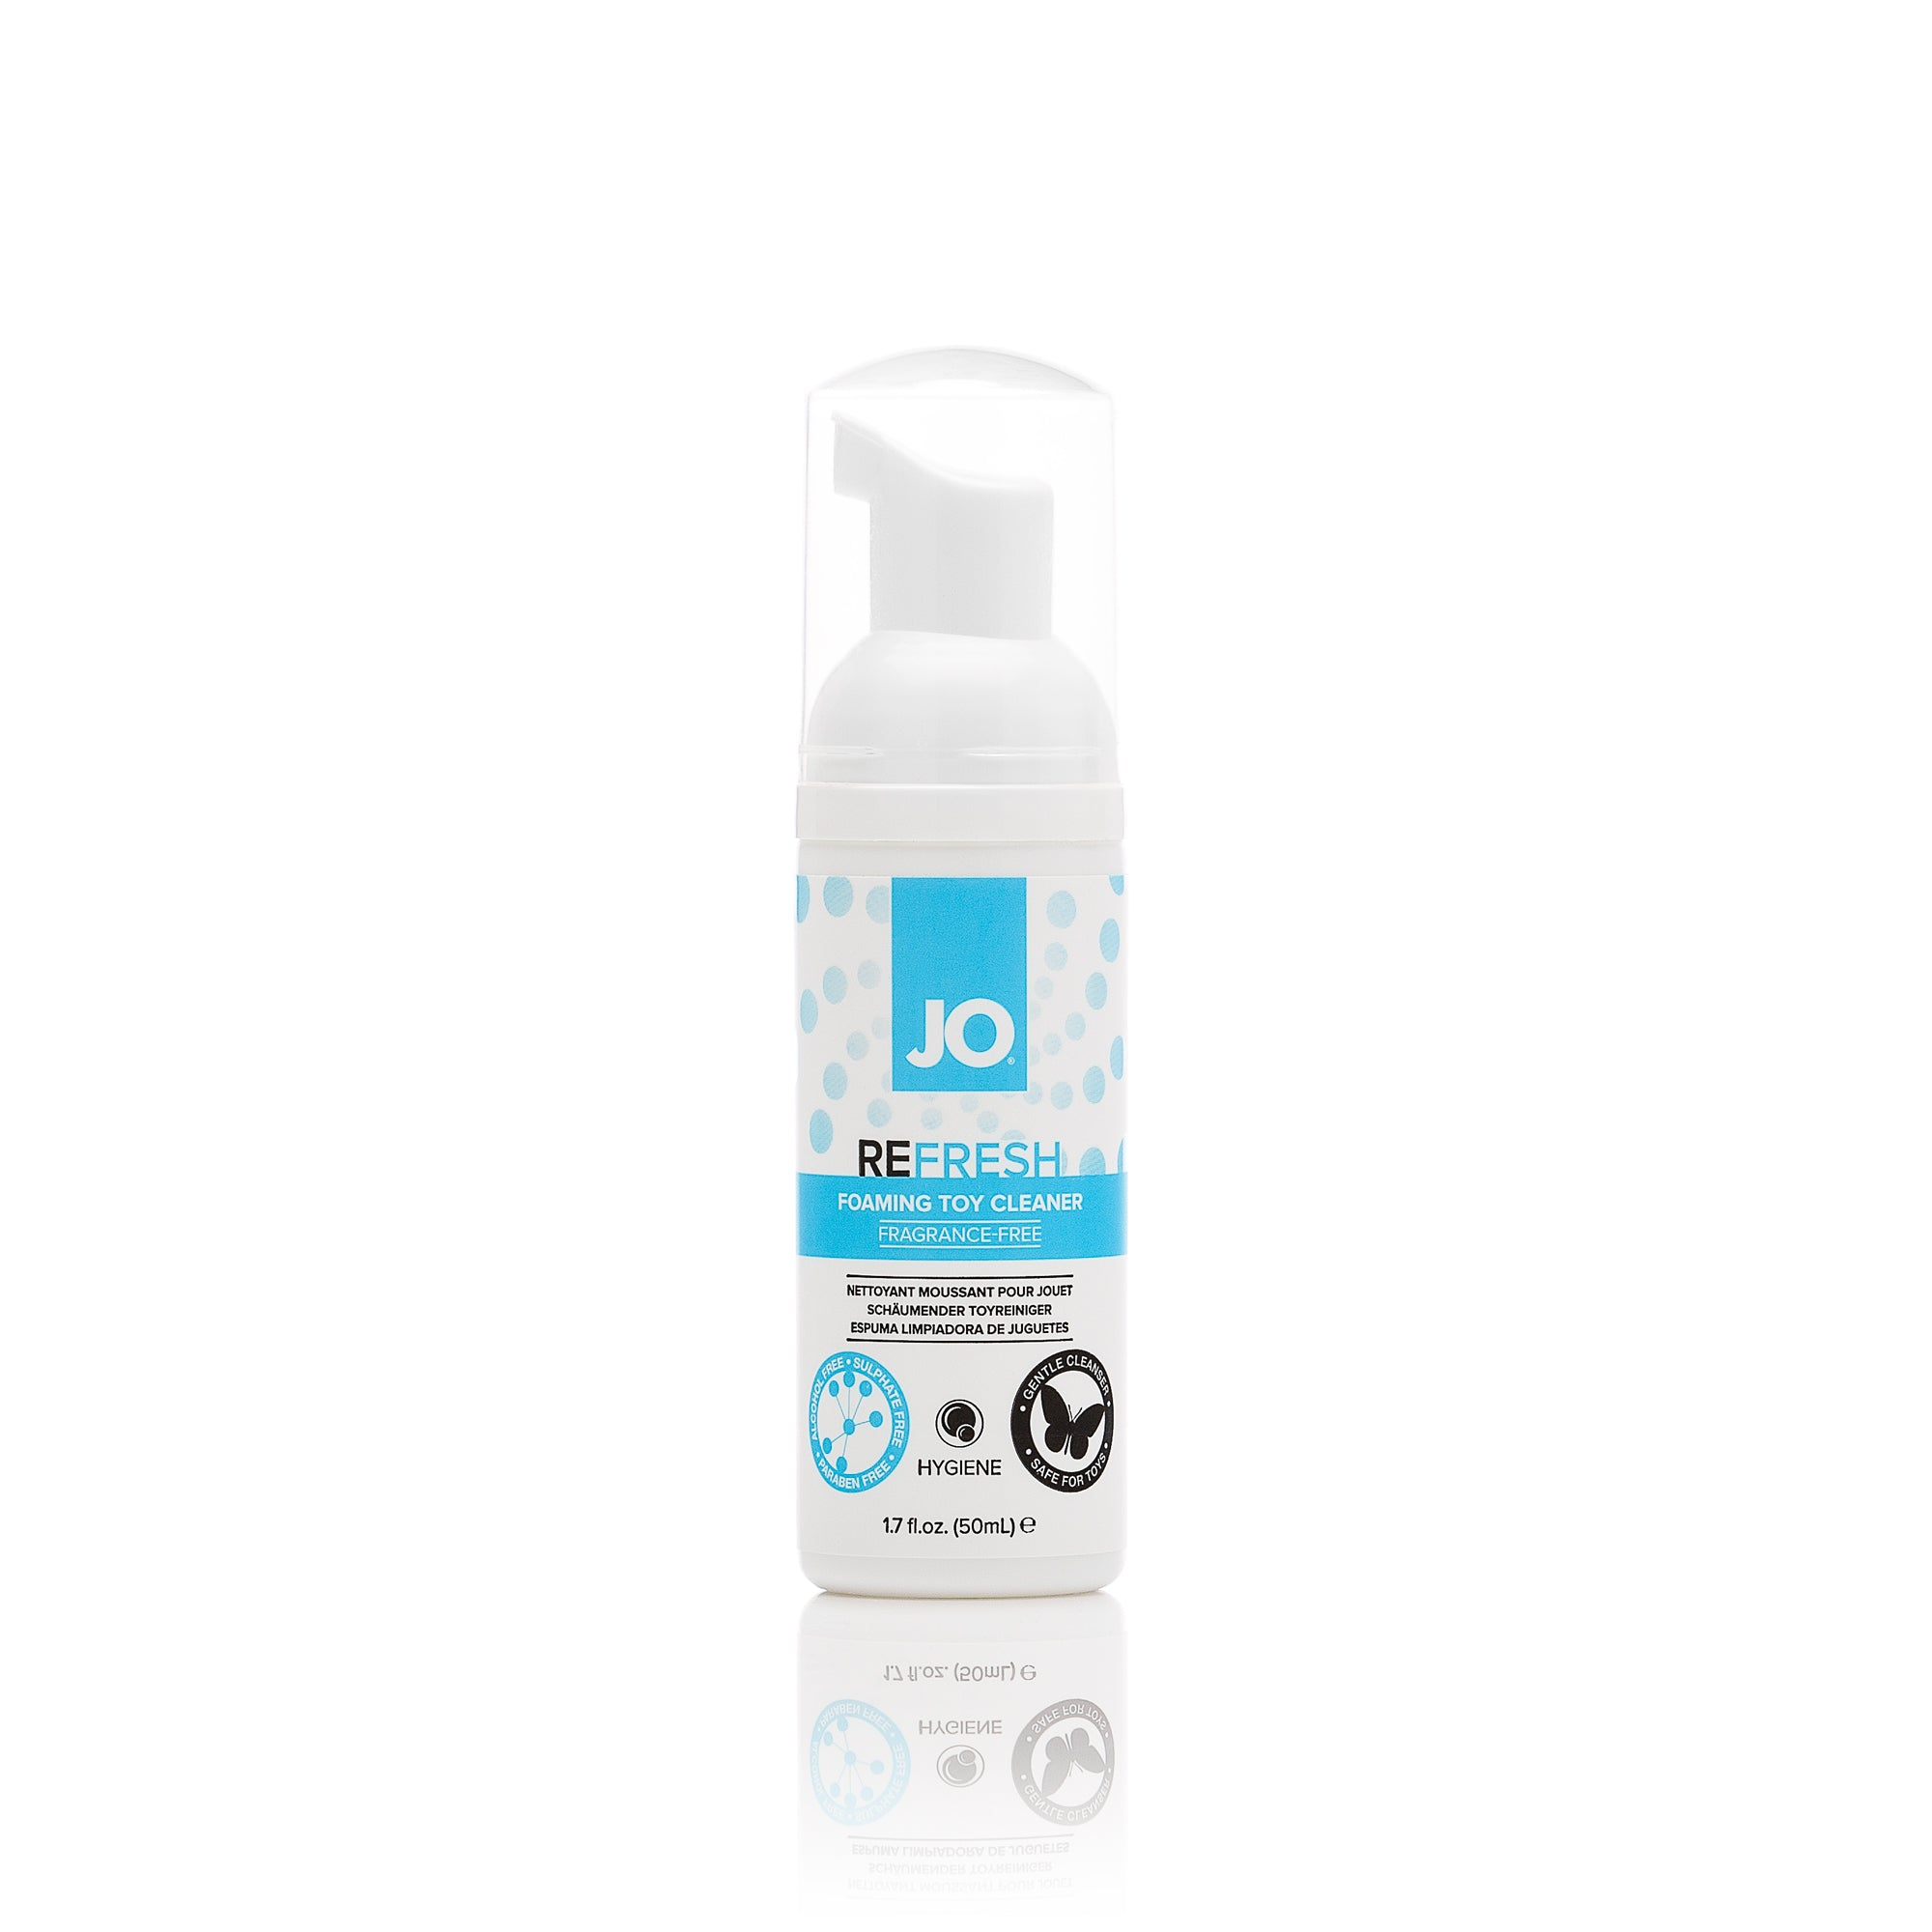 JO H20 Foaming Toy Cleaner